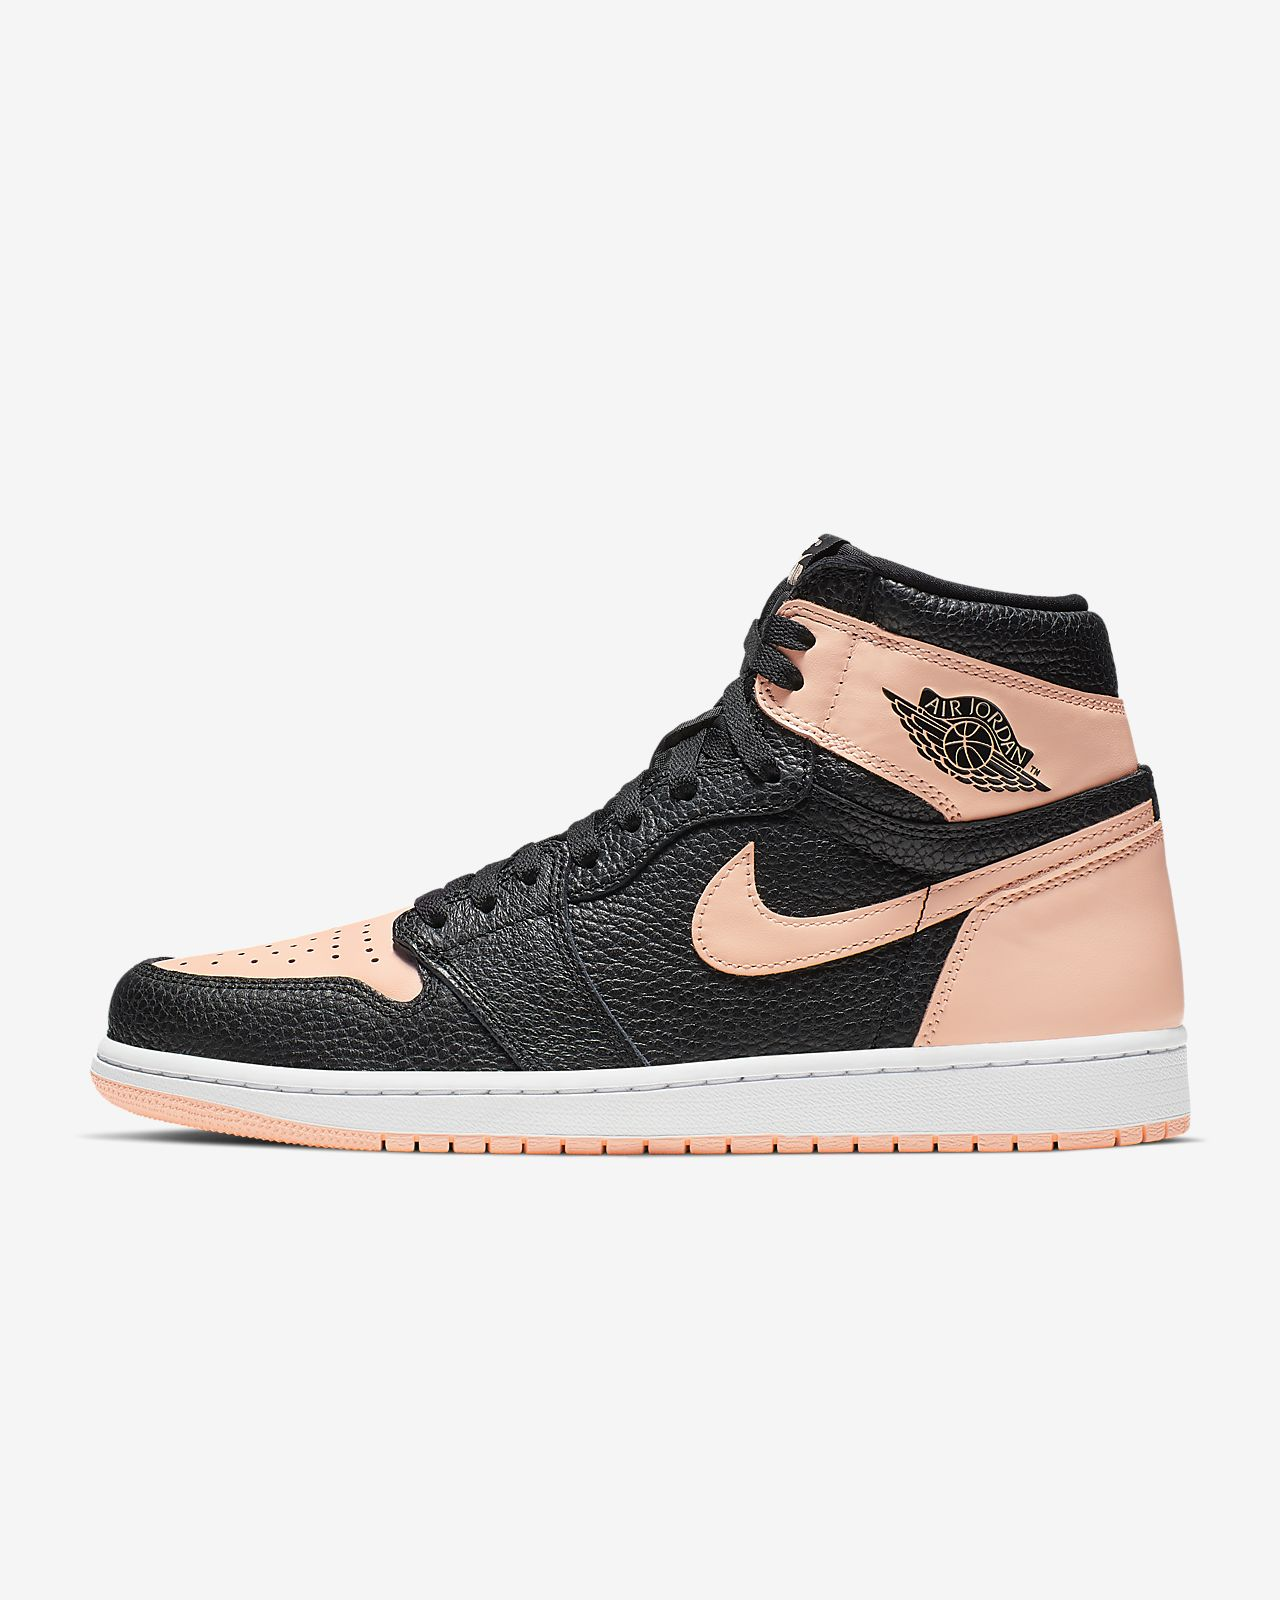 aefe559922ee Air Jordan 1 Retro High OG Shoe. Nike.com